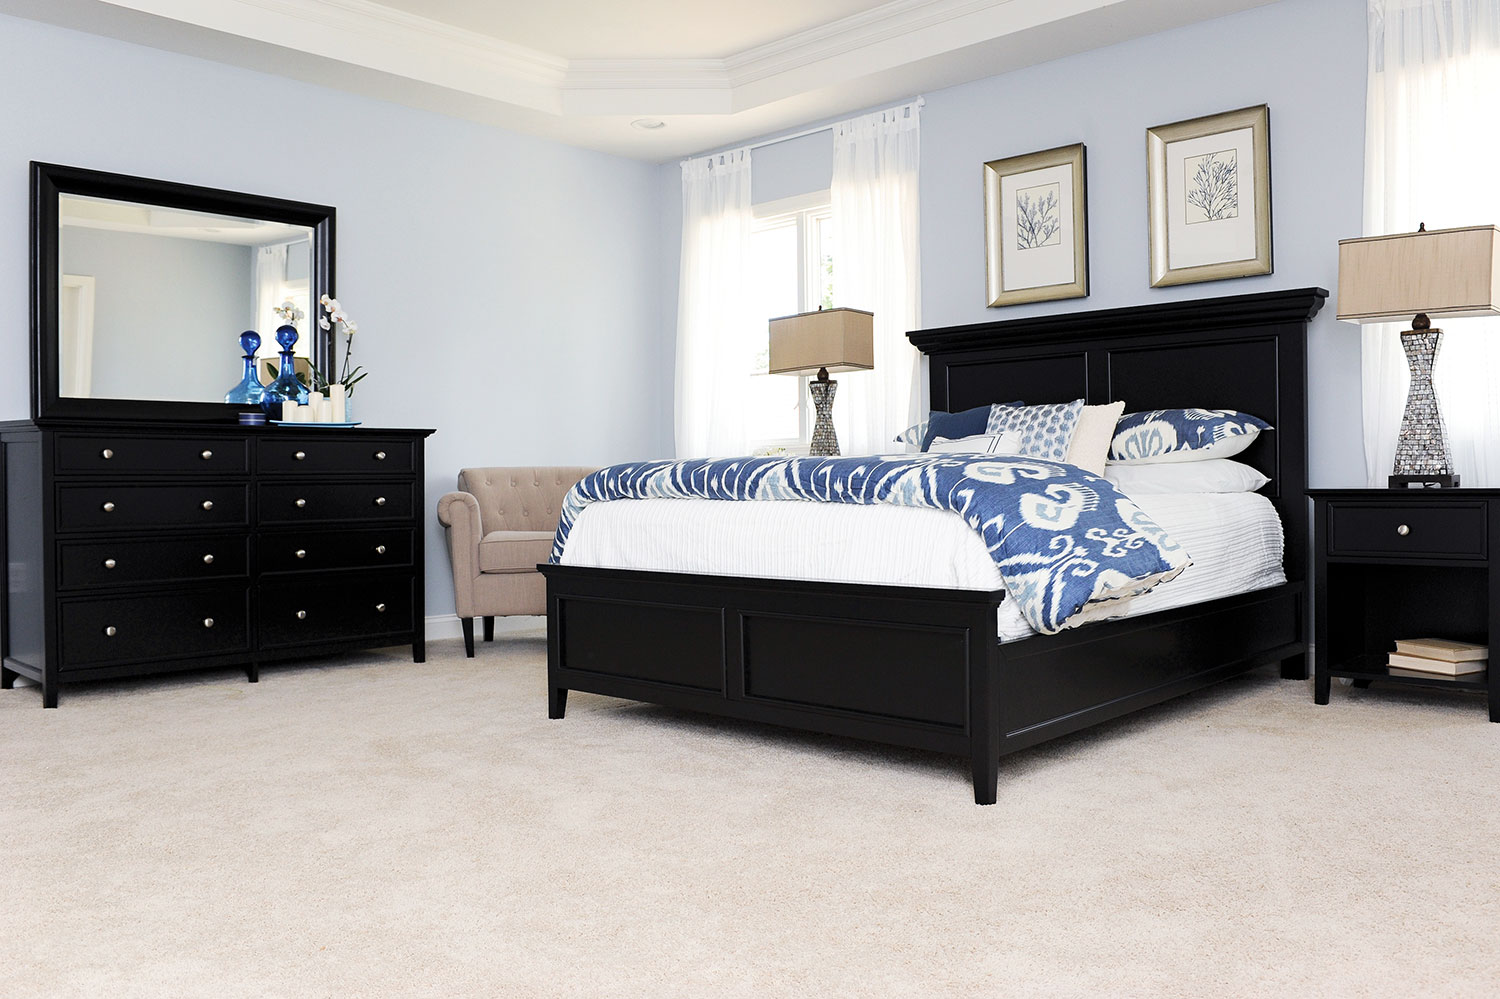 bedroom levin furniture 12080 | 480087 fit inside 320 320 composite to center center 320 320 background color white